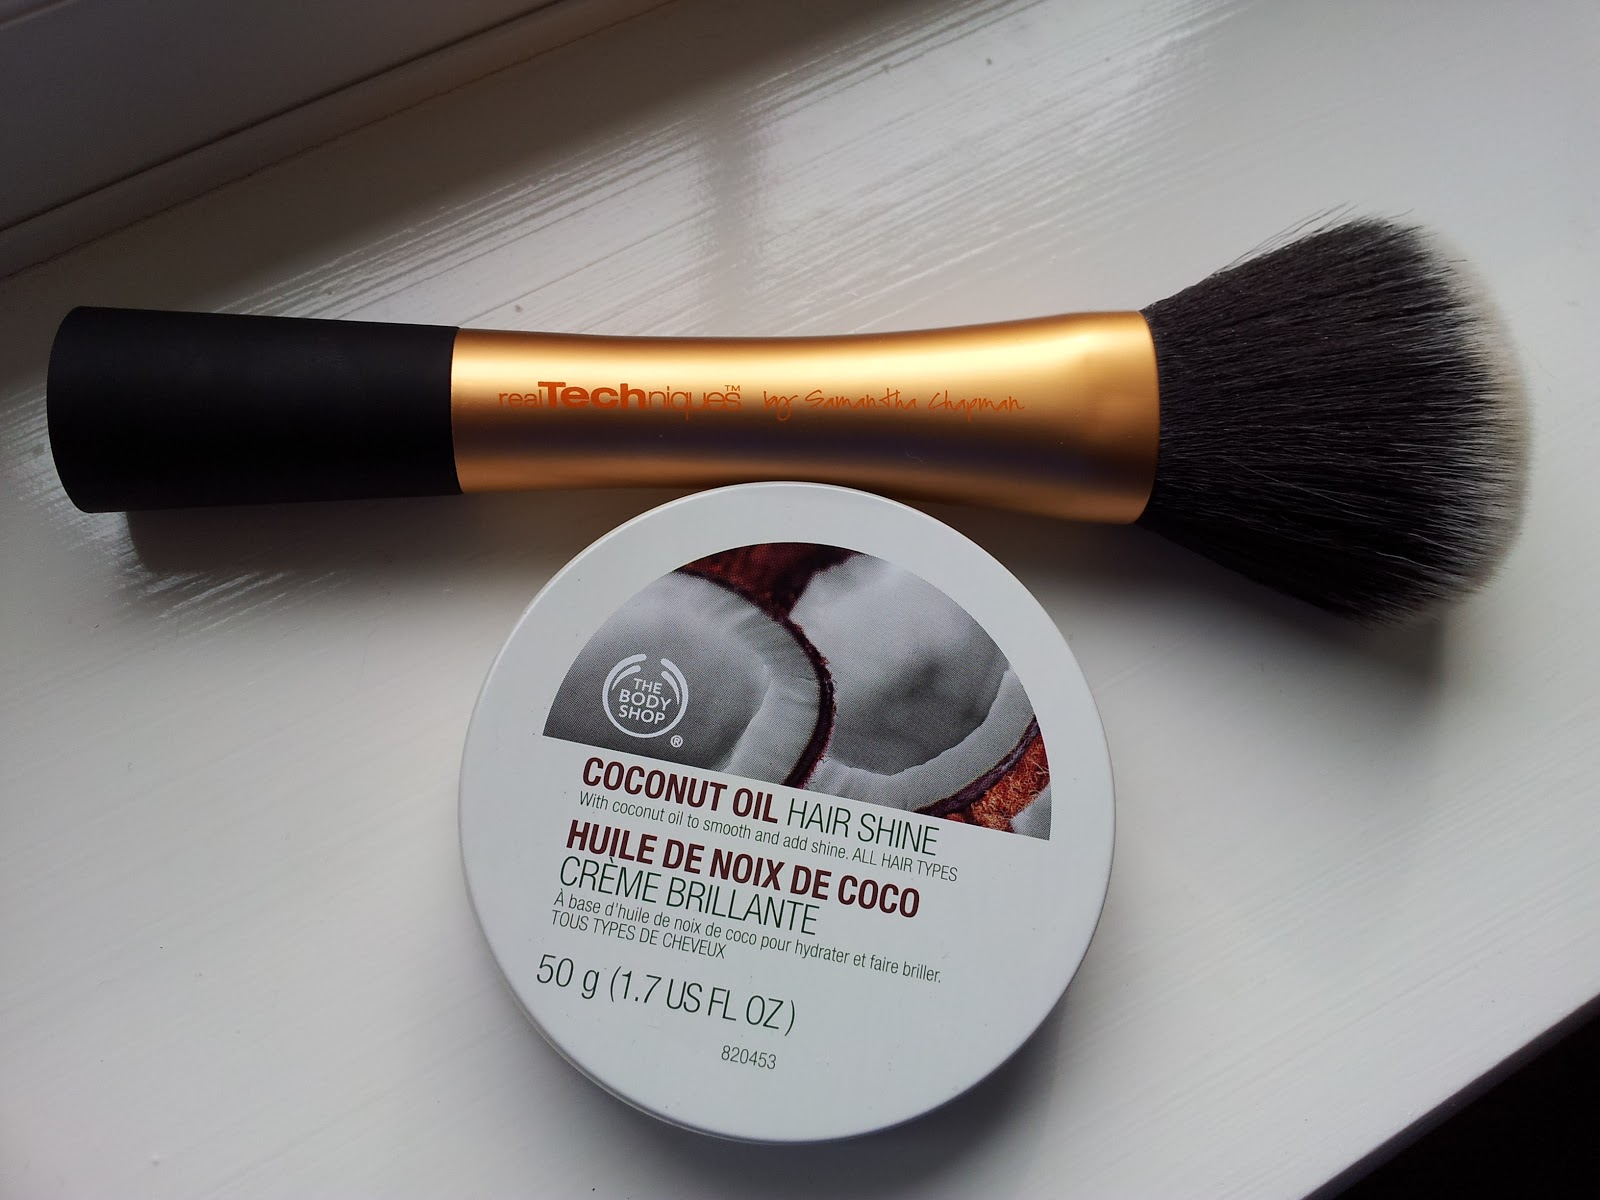 Real Techniques Powder Brush, The Body Shop Coconut Oil Hair Shine